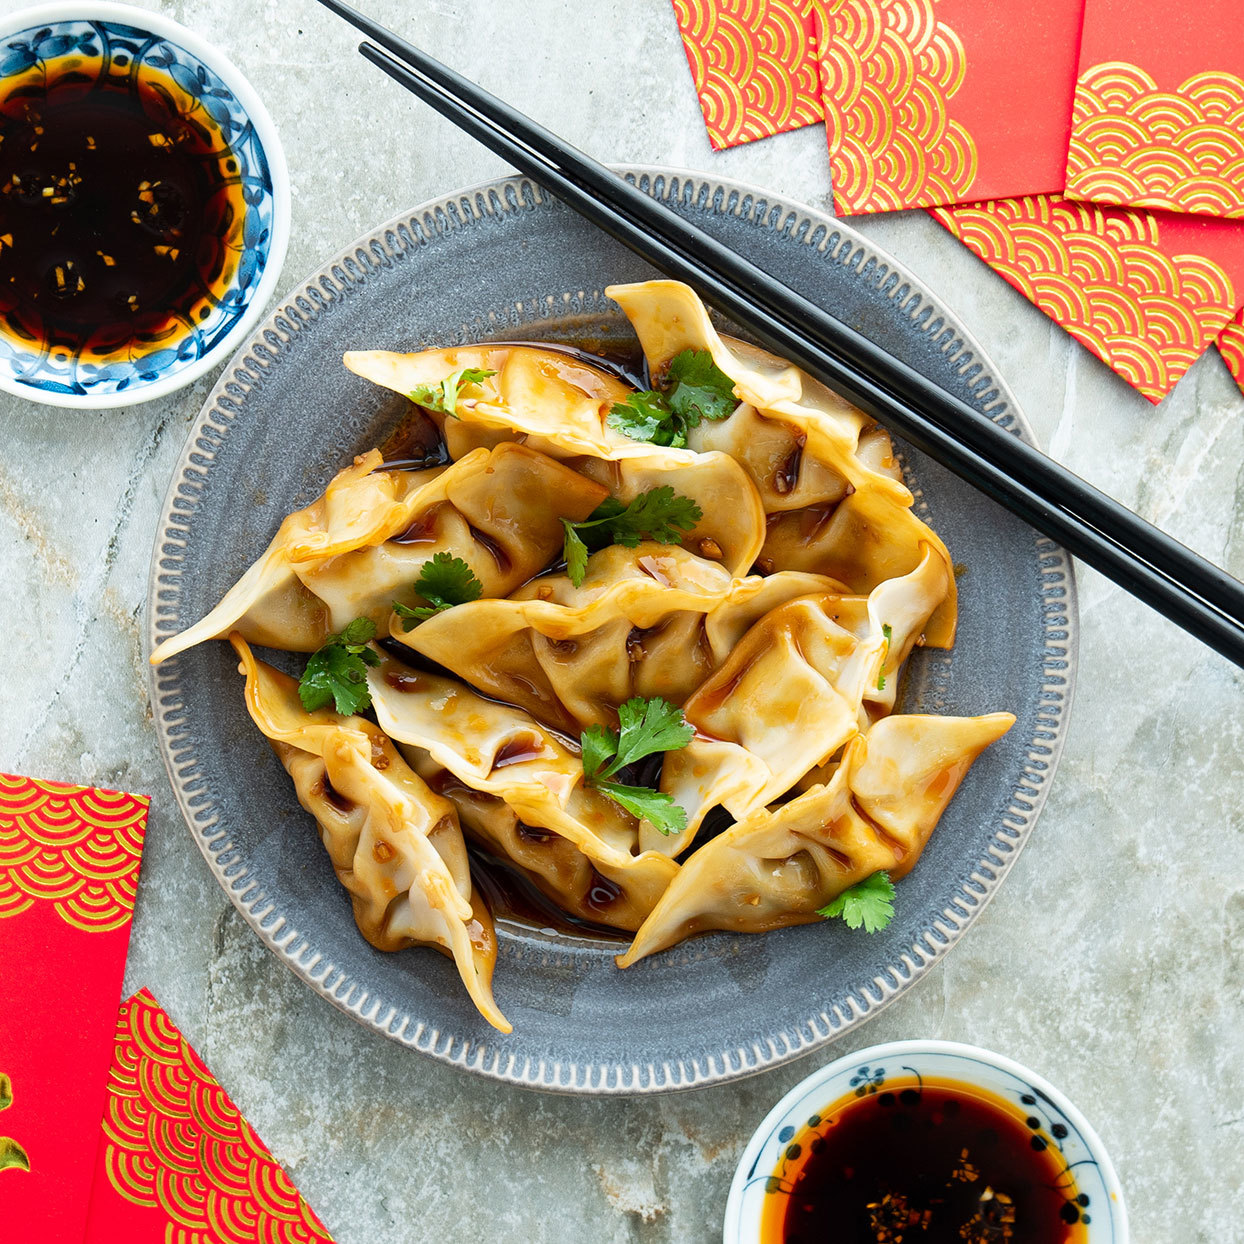 Serve these deliciously savory mushroom-and-chicken dumplings for Lunar New Year or any other special occasion. The sauce has just the right balance of sweet, spicy and tangy flavors. Source: EatingWell.com, January 2020